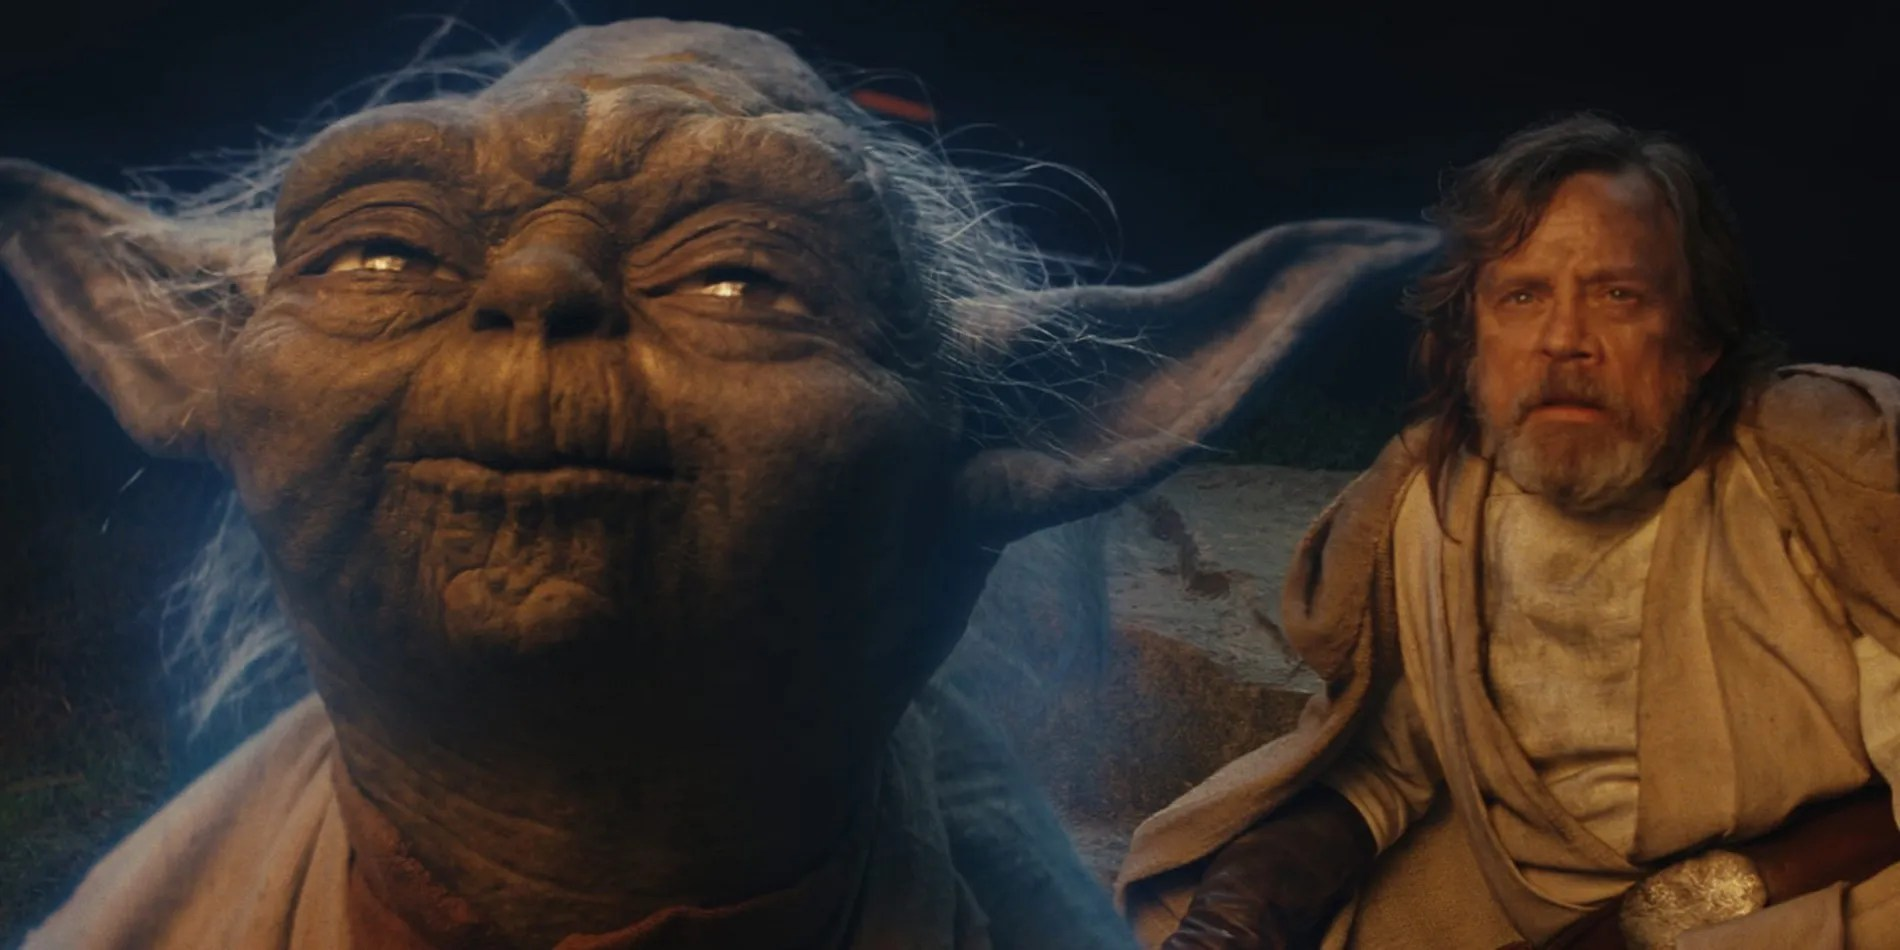 Yoda May Appear In Star Wars 9 Scene With Rey